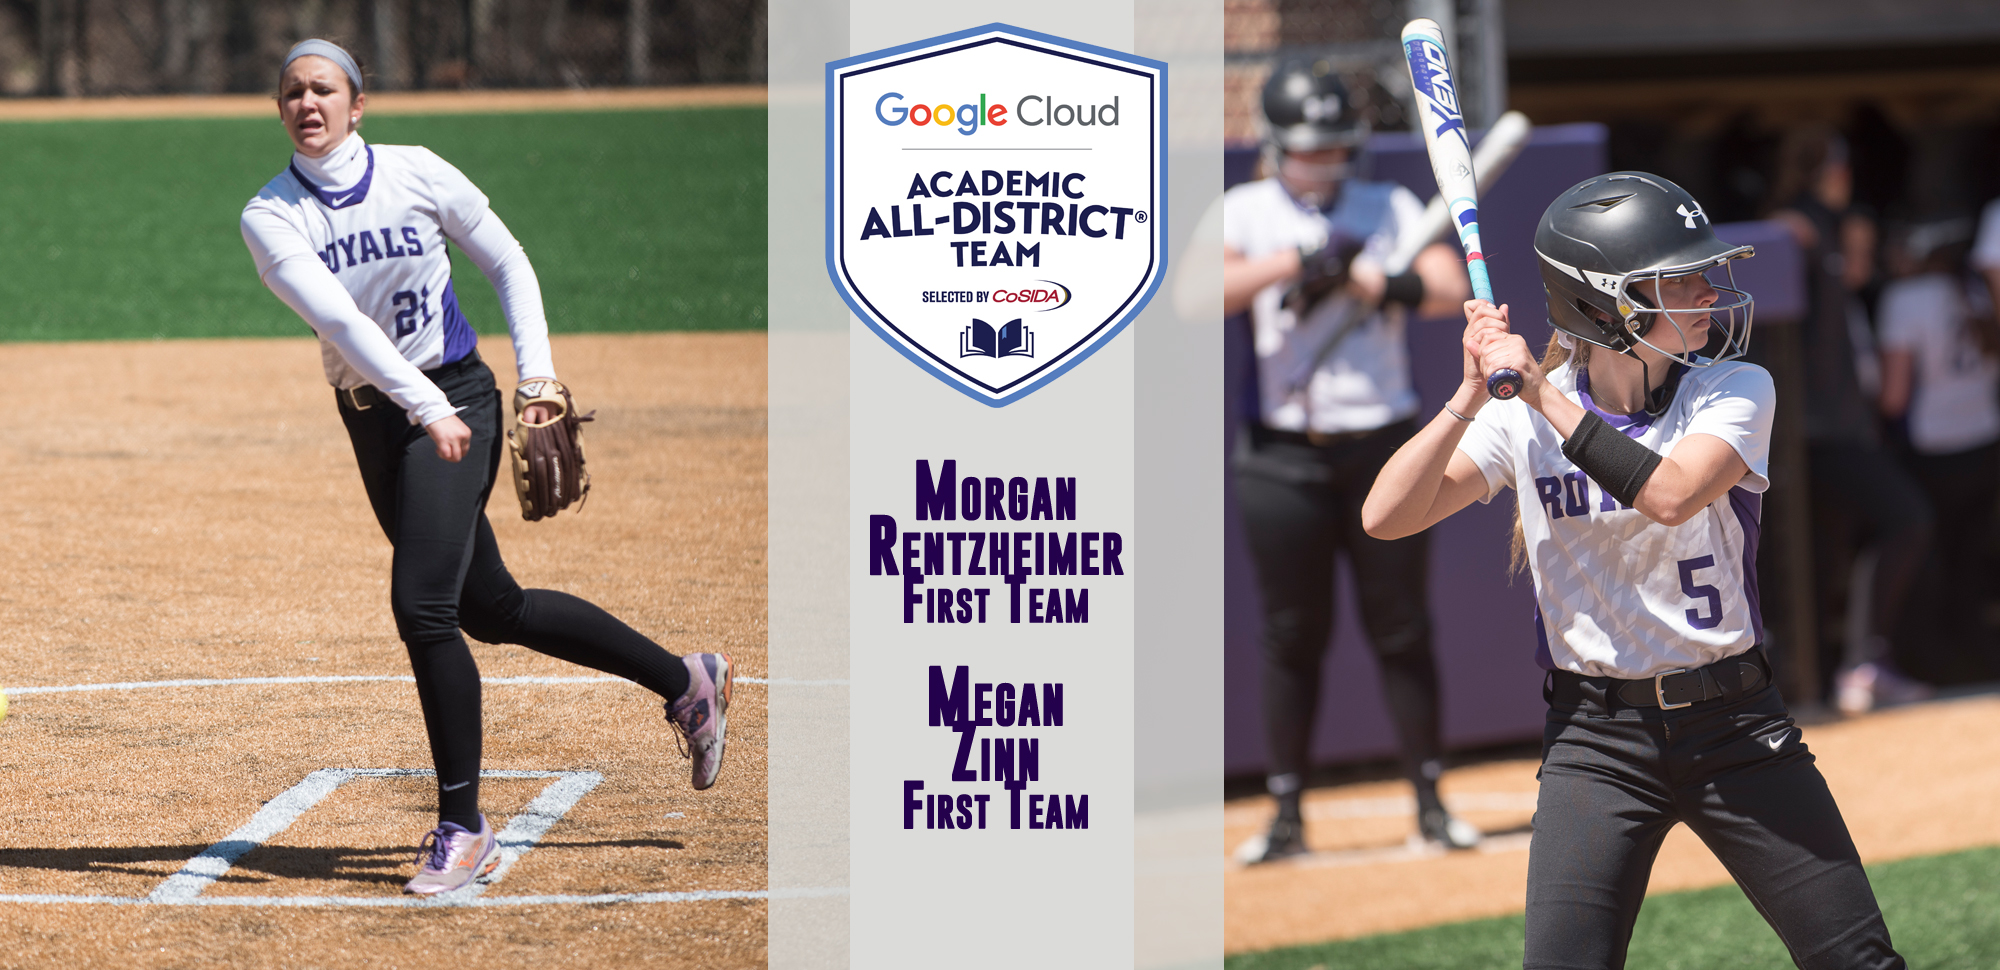 Morgan Rentzheimer and Megan Zinn received CoSIDA Academic All-District honors on Thursday.